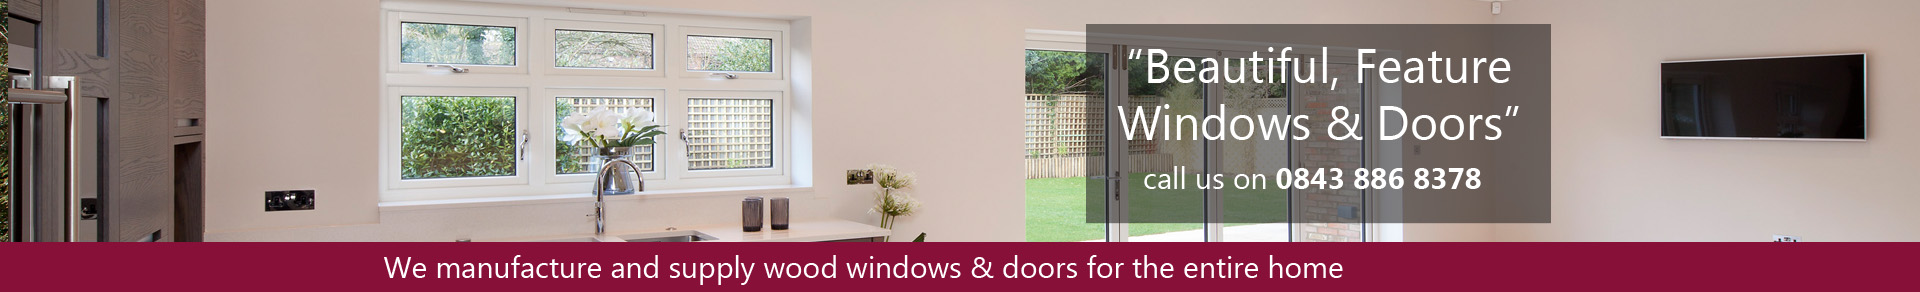 hardwood-windows-header